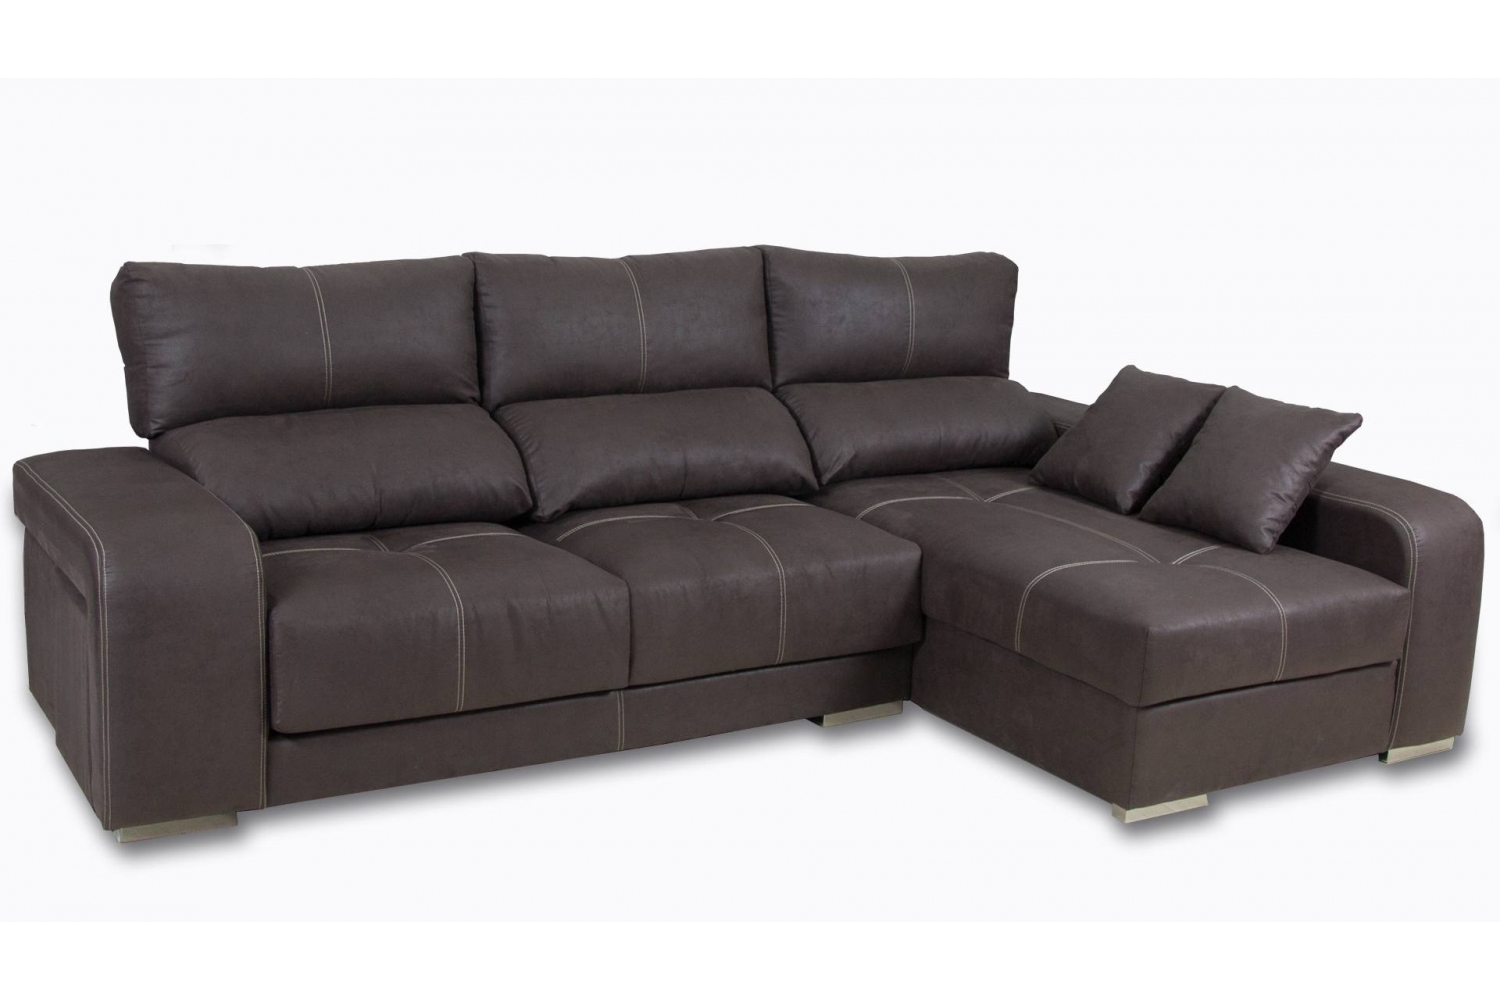 Que Es Arcon Sofa Https Eurosomni Es Weekly 1 Https Eurosomni